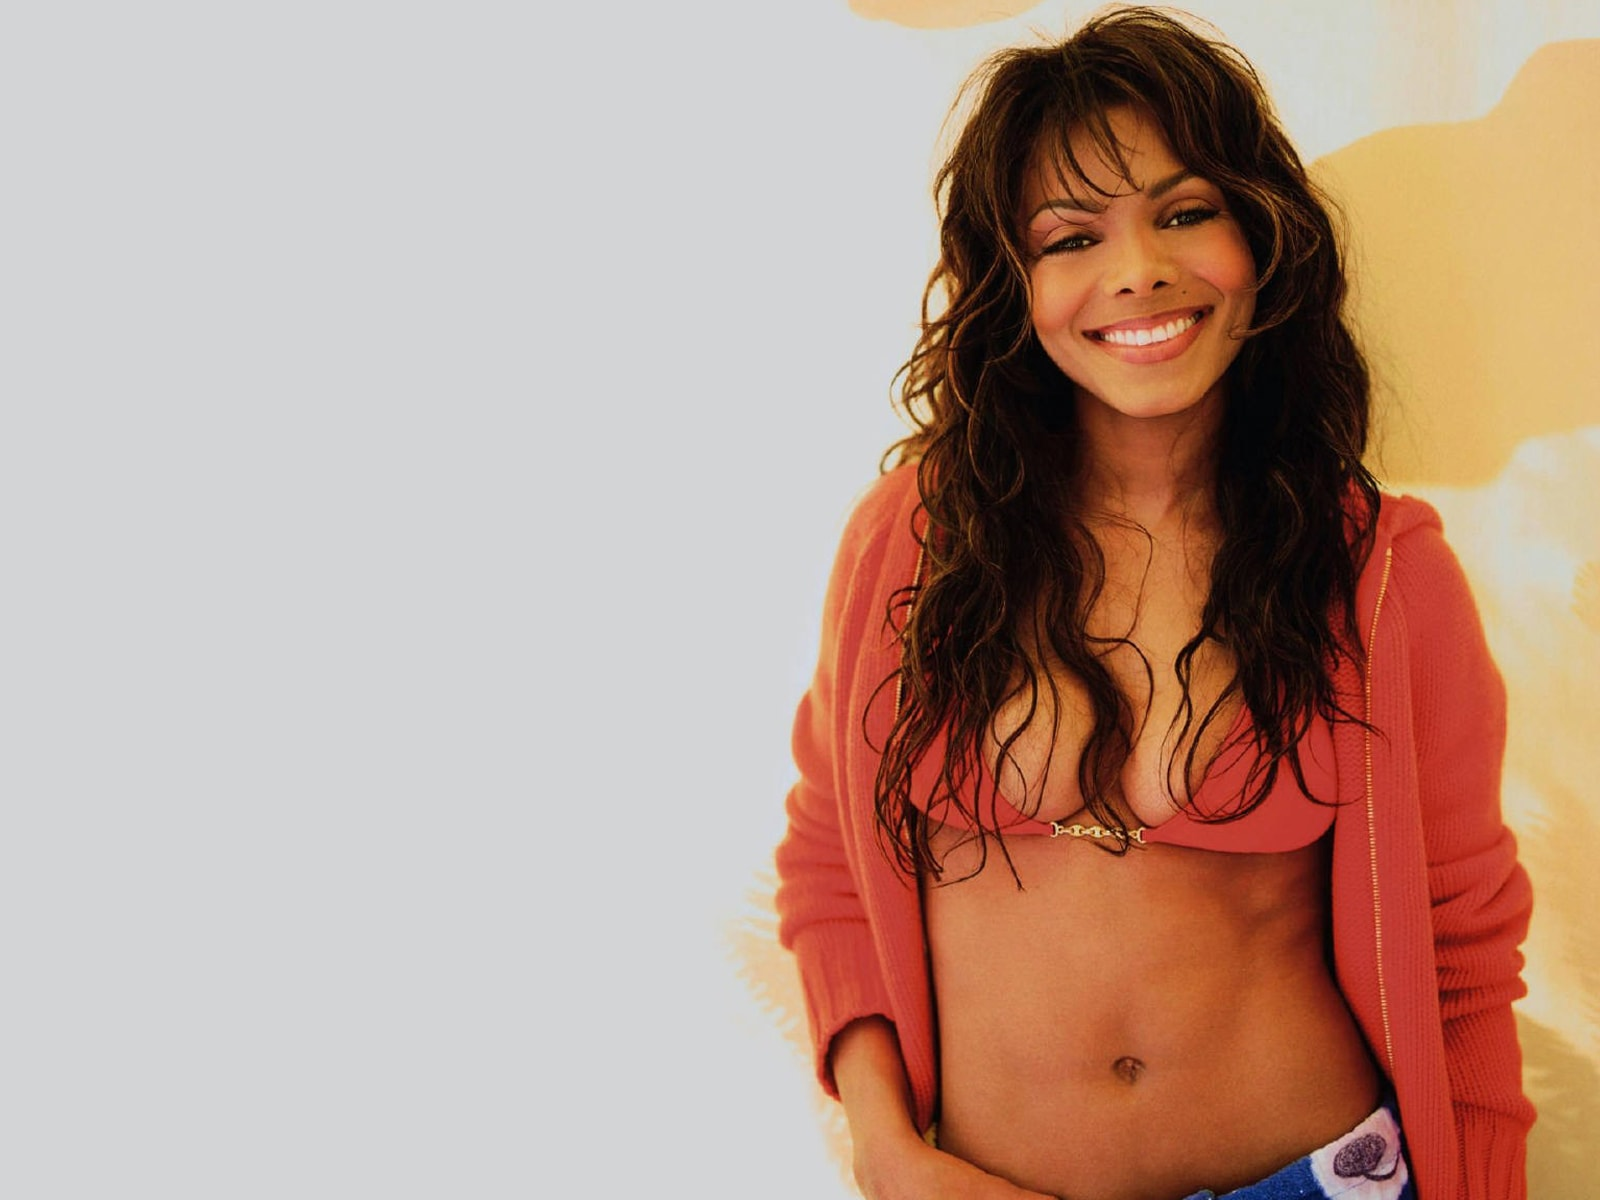 Janet Jackson wallpaper for mobile